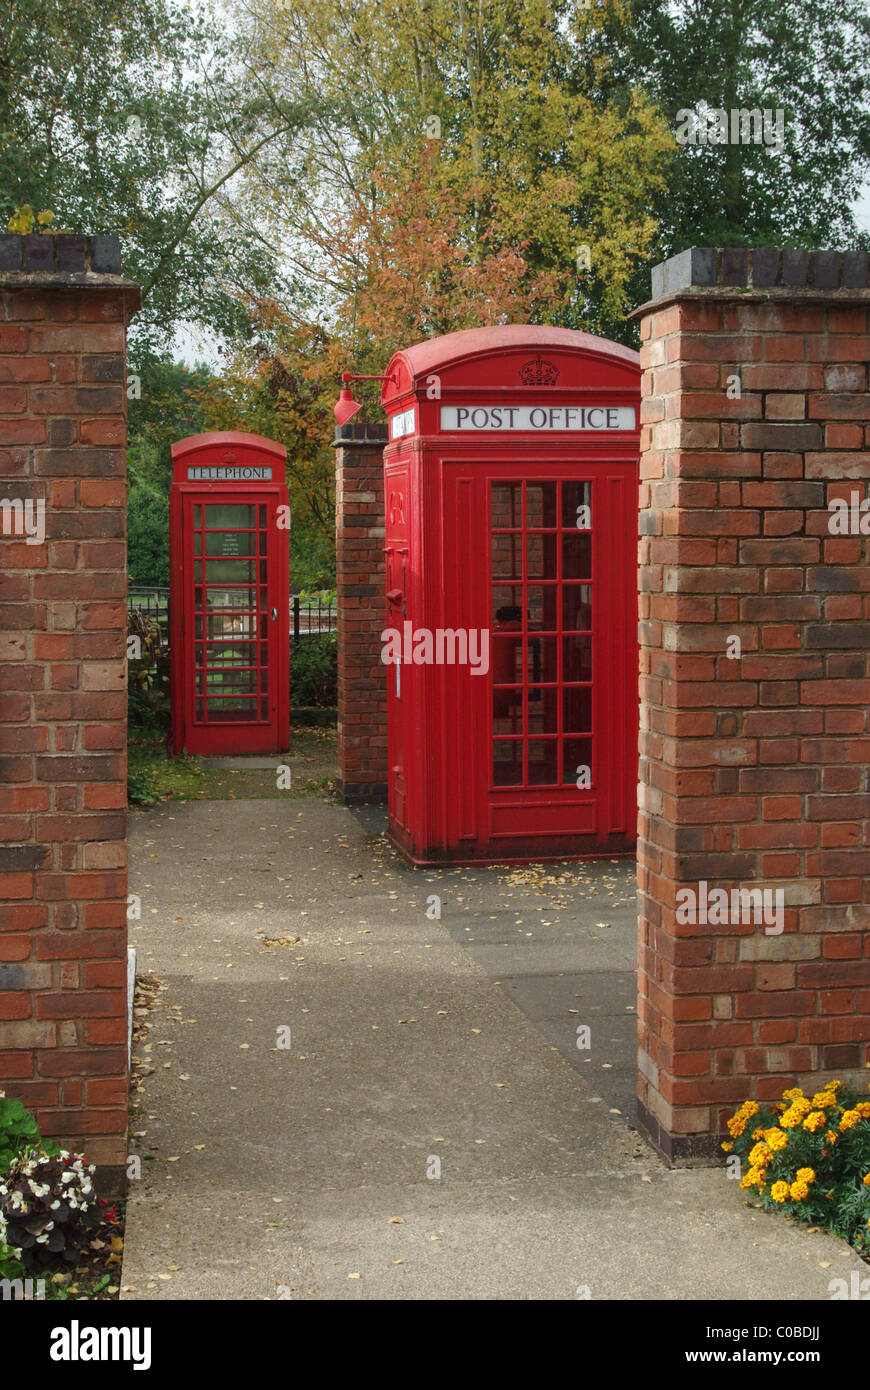 Part of a collection of vintage phone boxes at Avoncroft Museum of Historic Buildings, Bromsgrove, UK - Stock Image